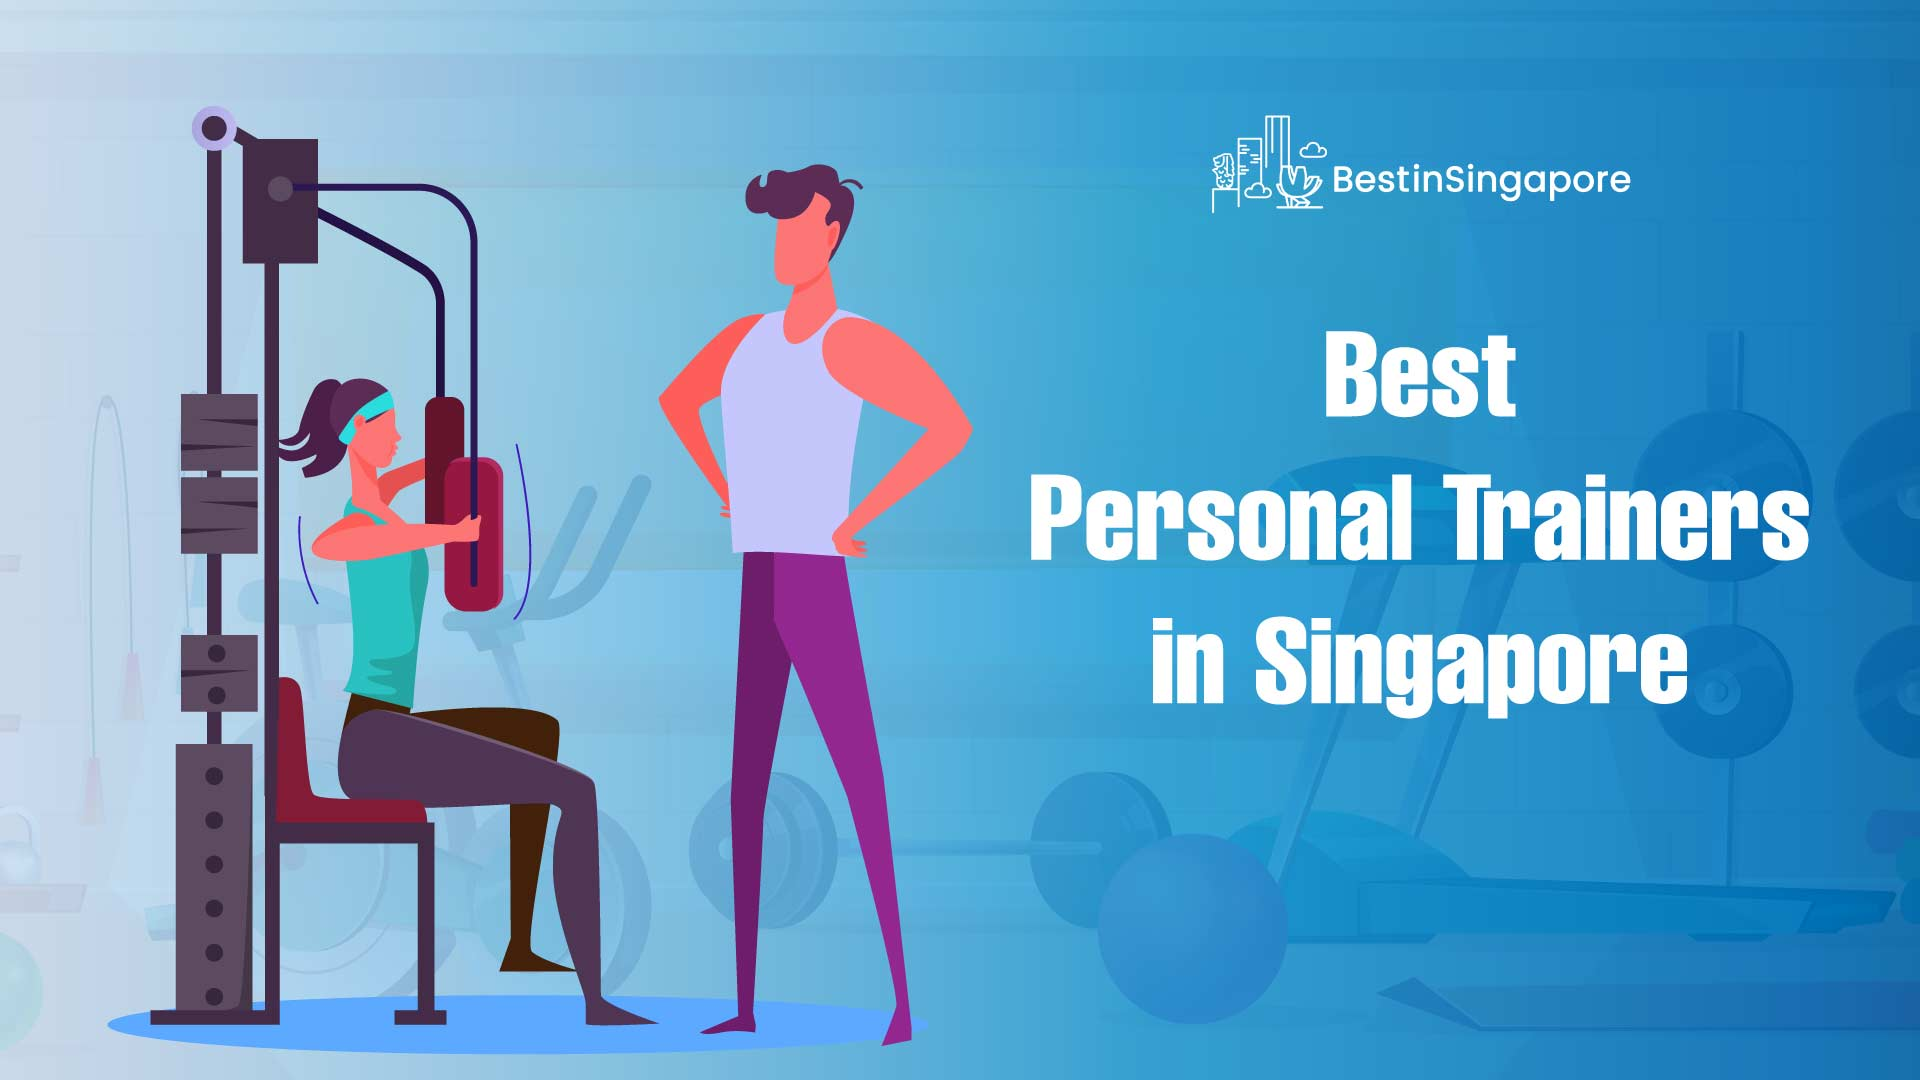 Best Personal Trainers in Singapore